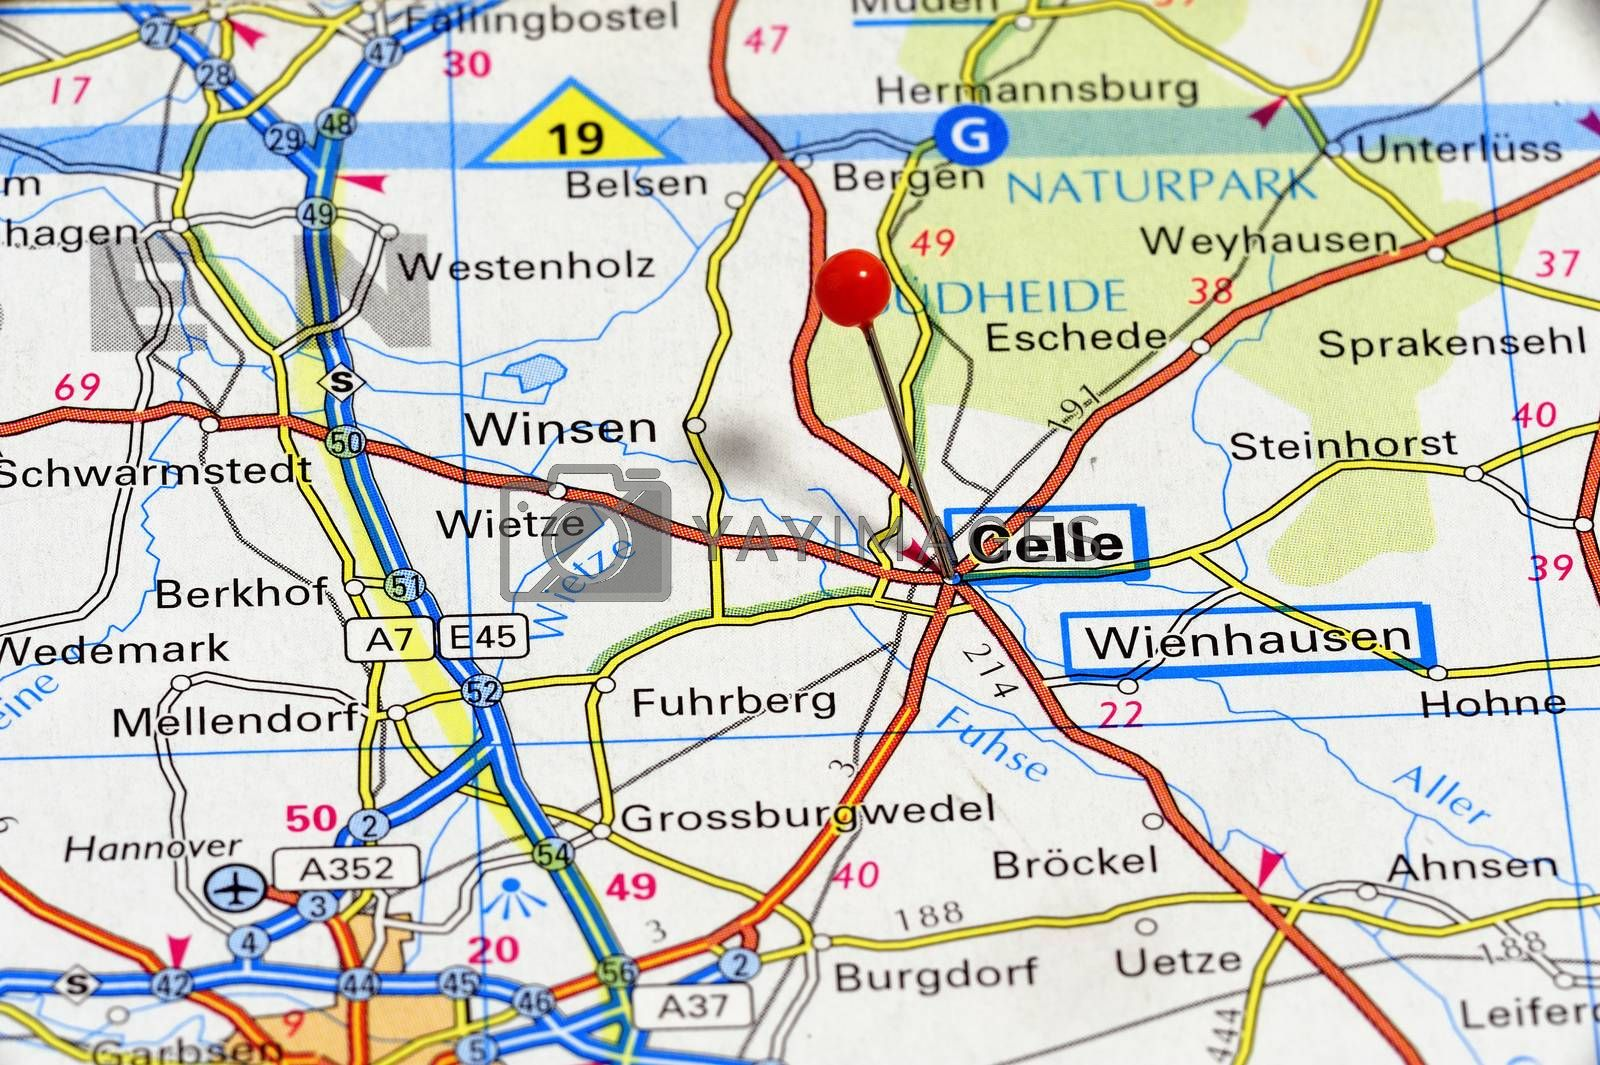 European cities on map series: Celle